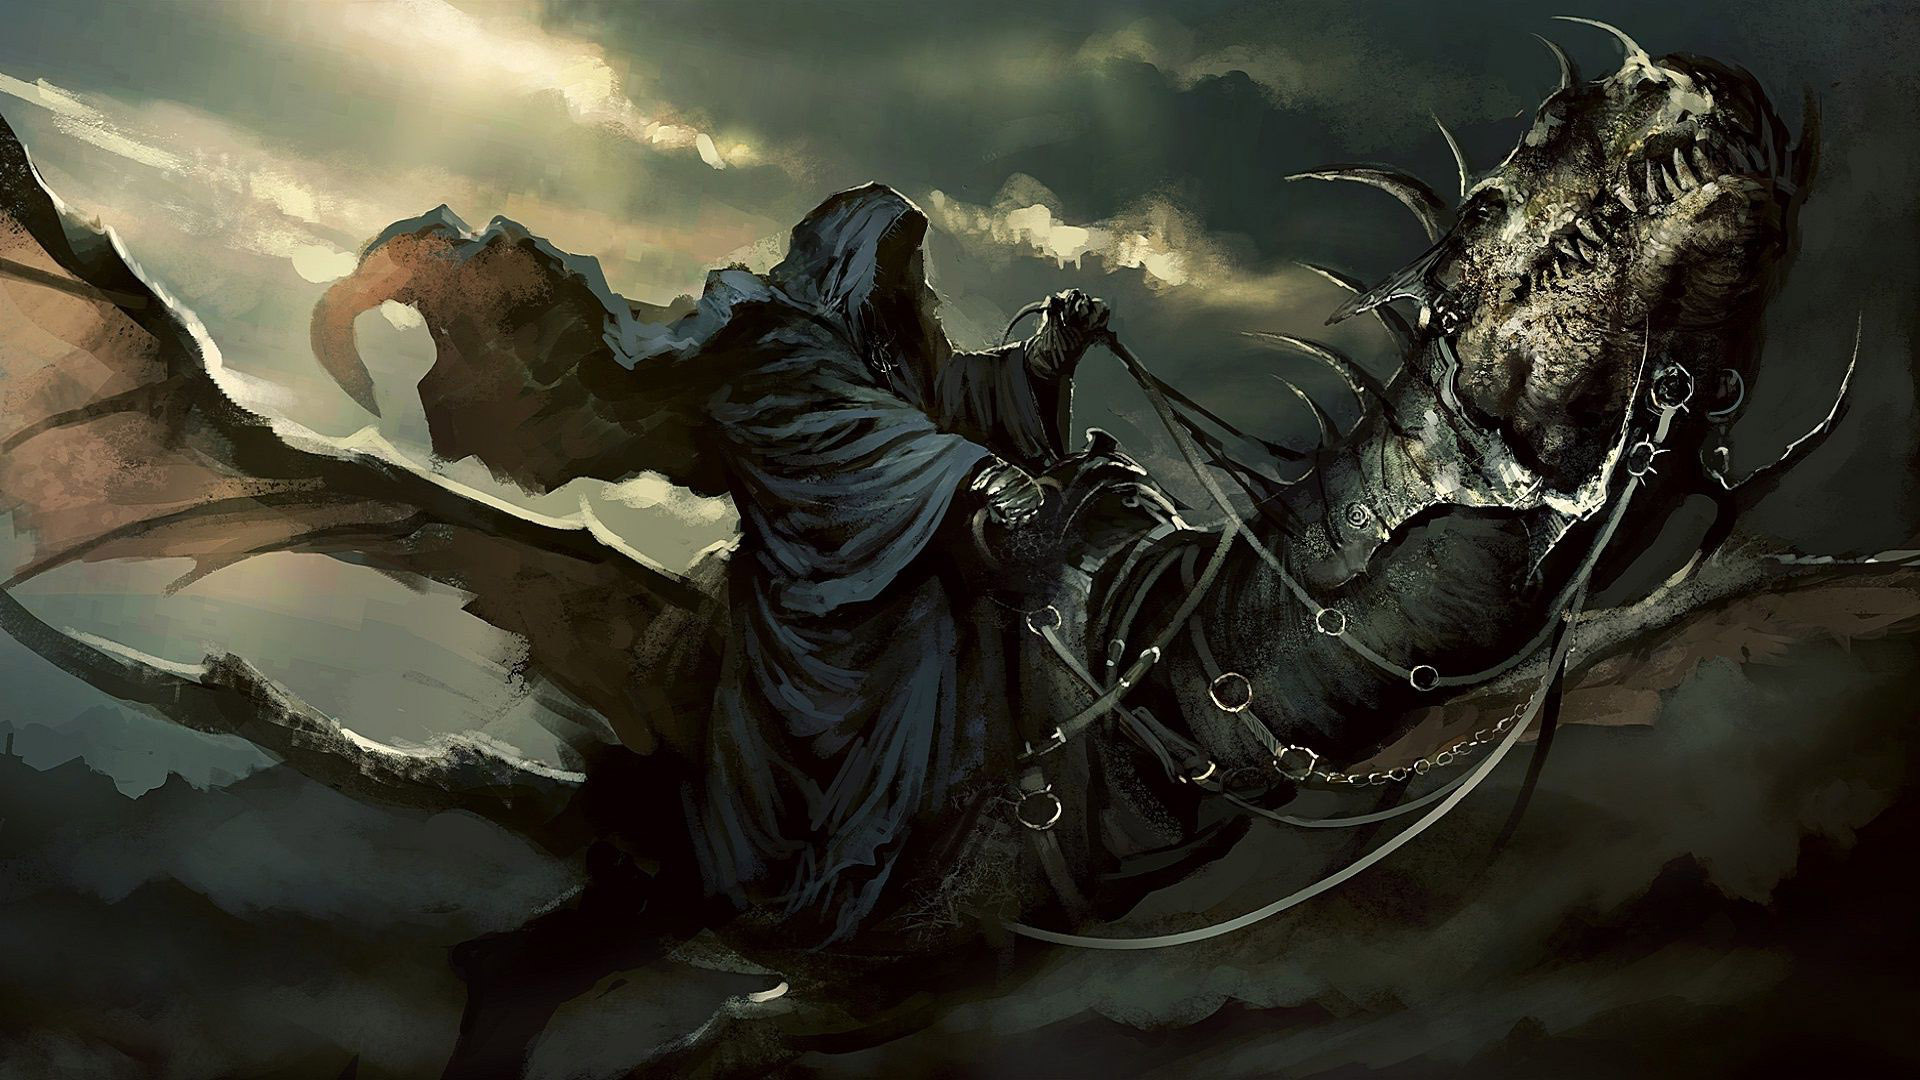 21 lord of the rings nazgul hd wallpaper 517 lord of